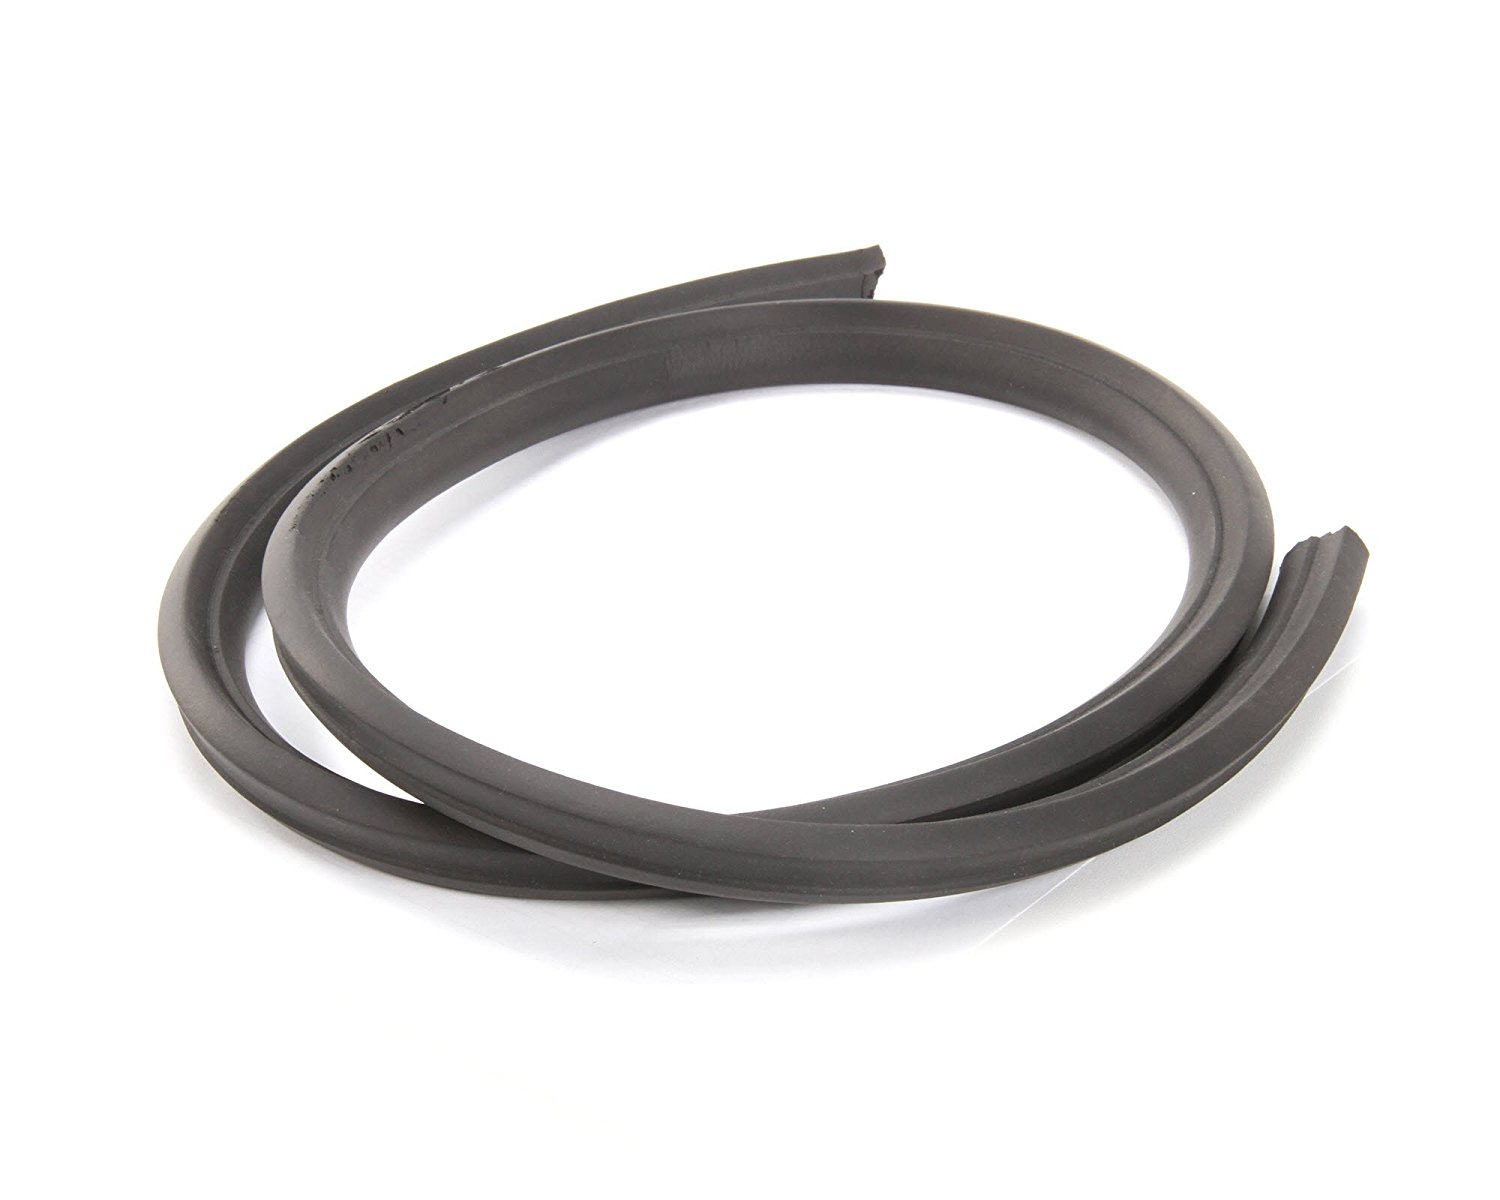 Ice-O-Matic 6081036-01 Bin Door Gasket (Per Ft.) Gray